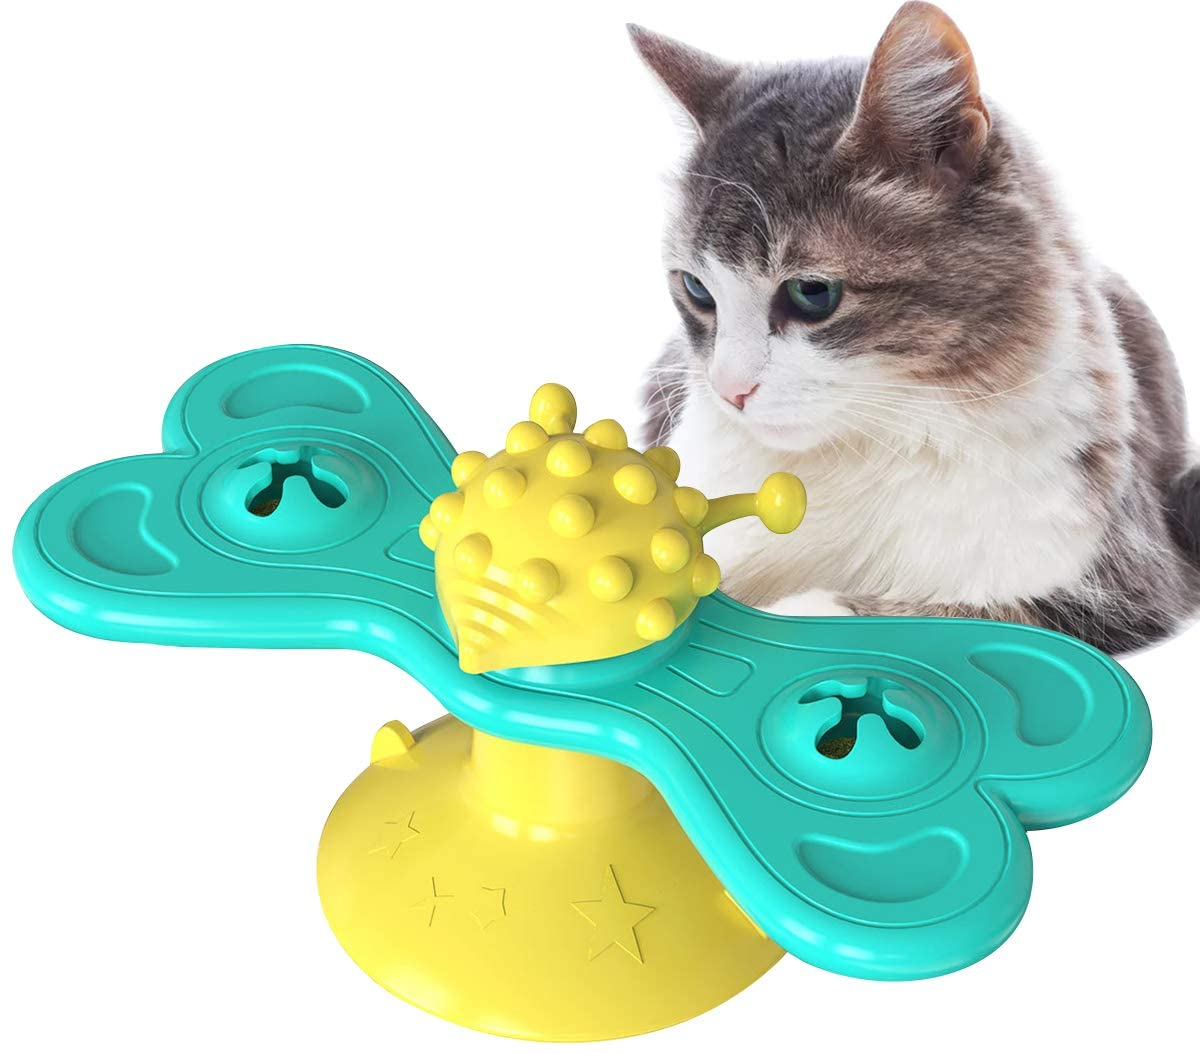 TANG-CN Windmill Cat Toy with Catnip, Non-Toxic Rubber Cat Interactive Toothbrush Chew Toy, Multi-Functional Turntable Kitten Toy for Massage Scratching Tickle Hair Brush Safe Reduces Boredom